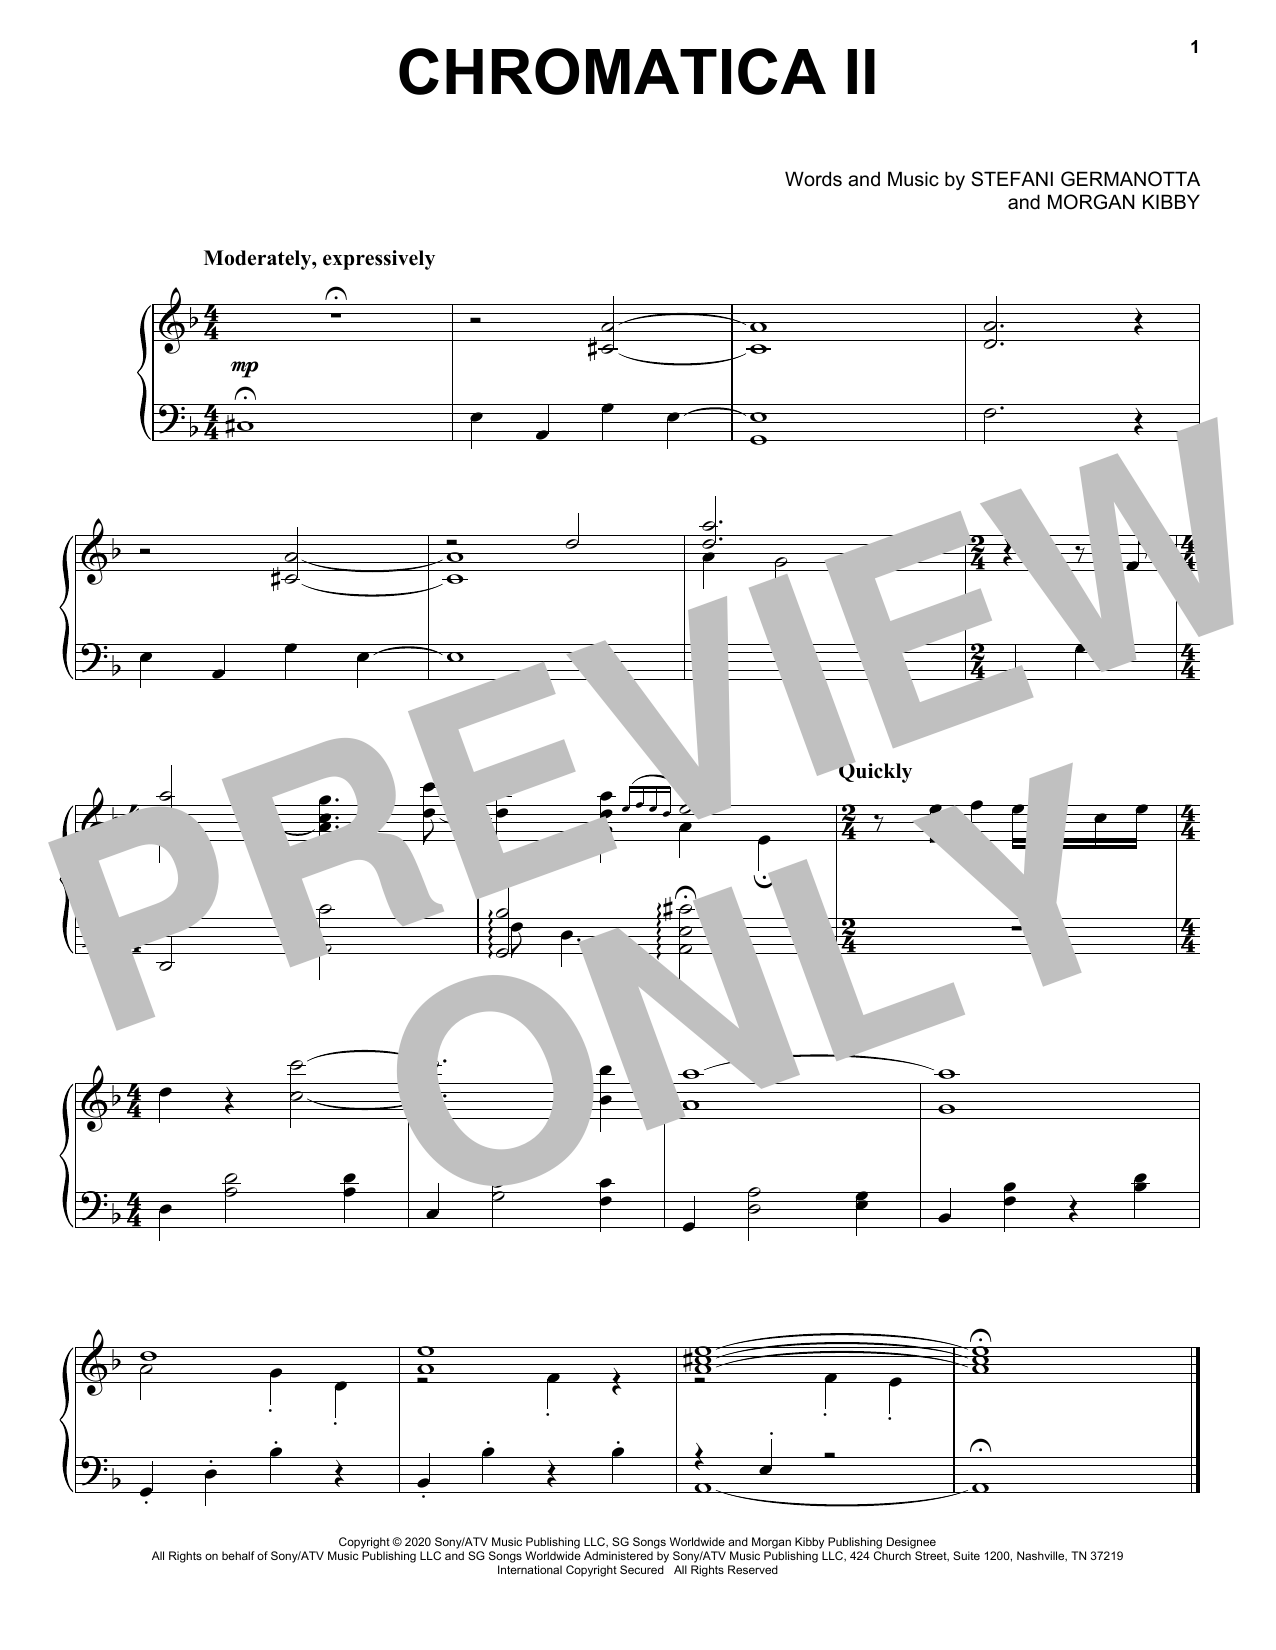 Lady Gaga Chromatica II sheet music notes and chords. Download Printable PDF.